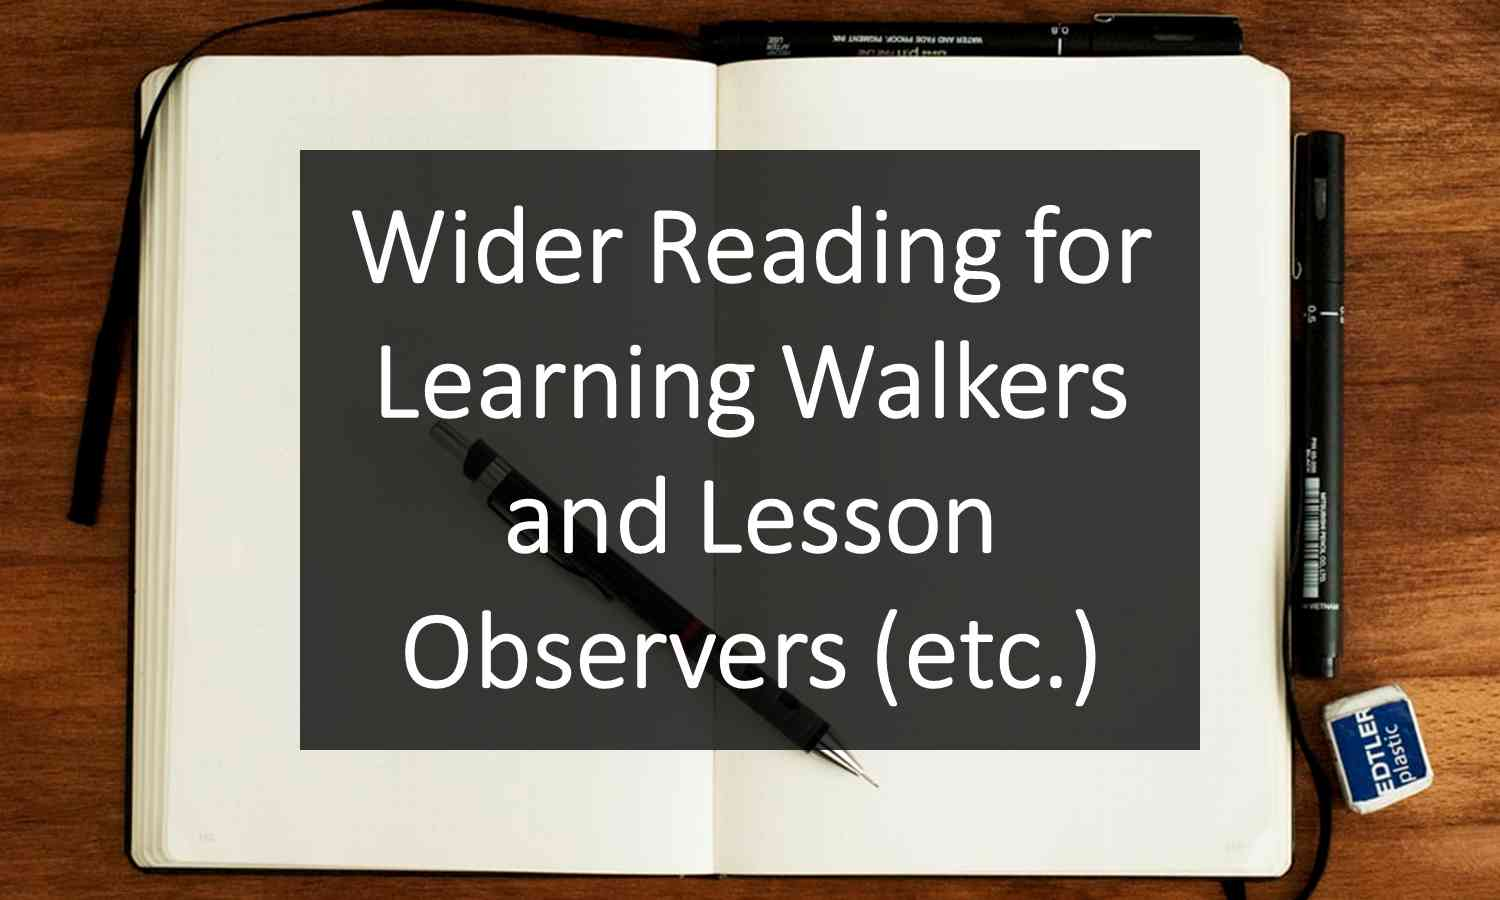 Wider Reading for Learning Walkers and Lesson Observers (etc.) - Douglas Wise